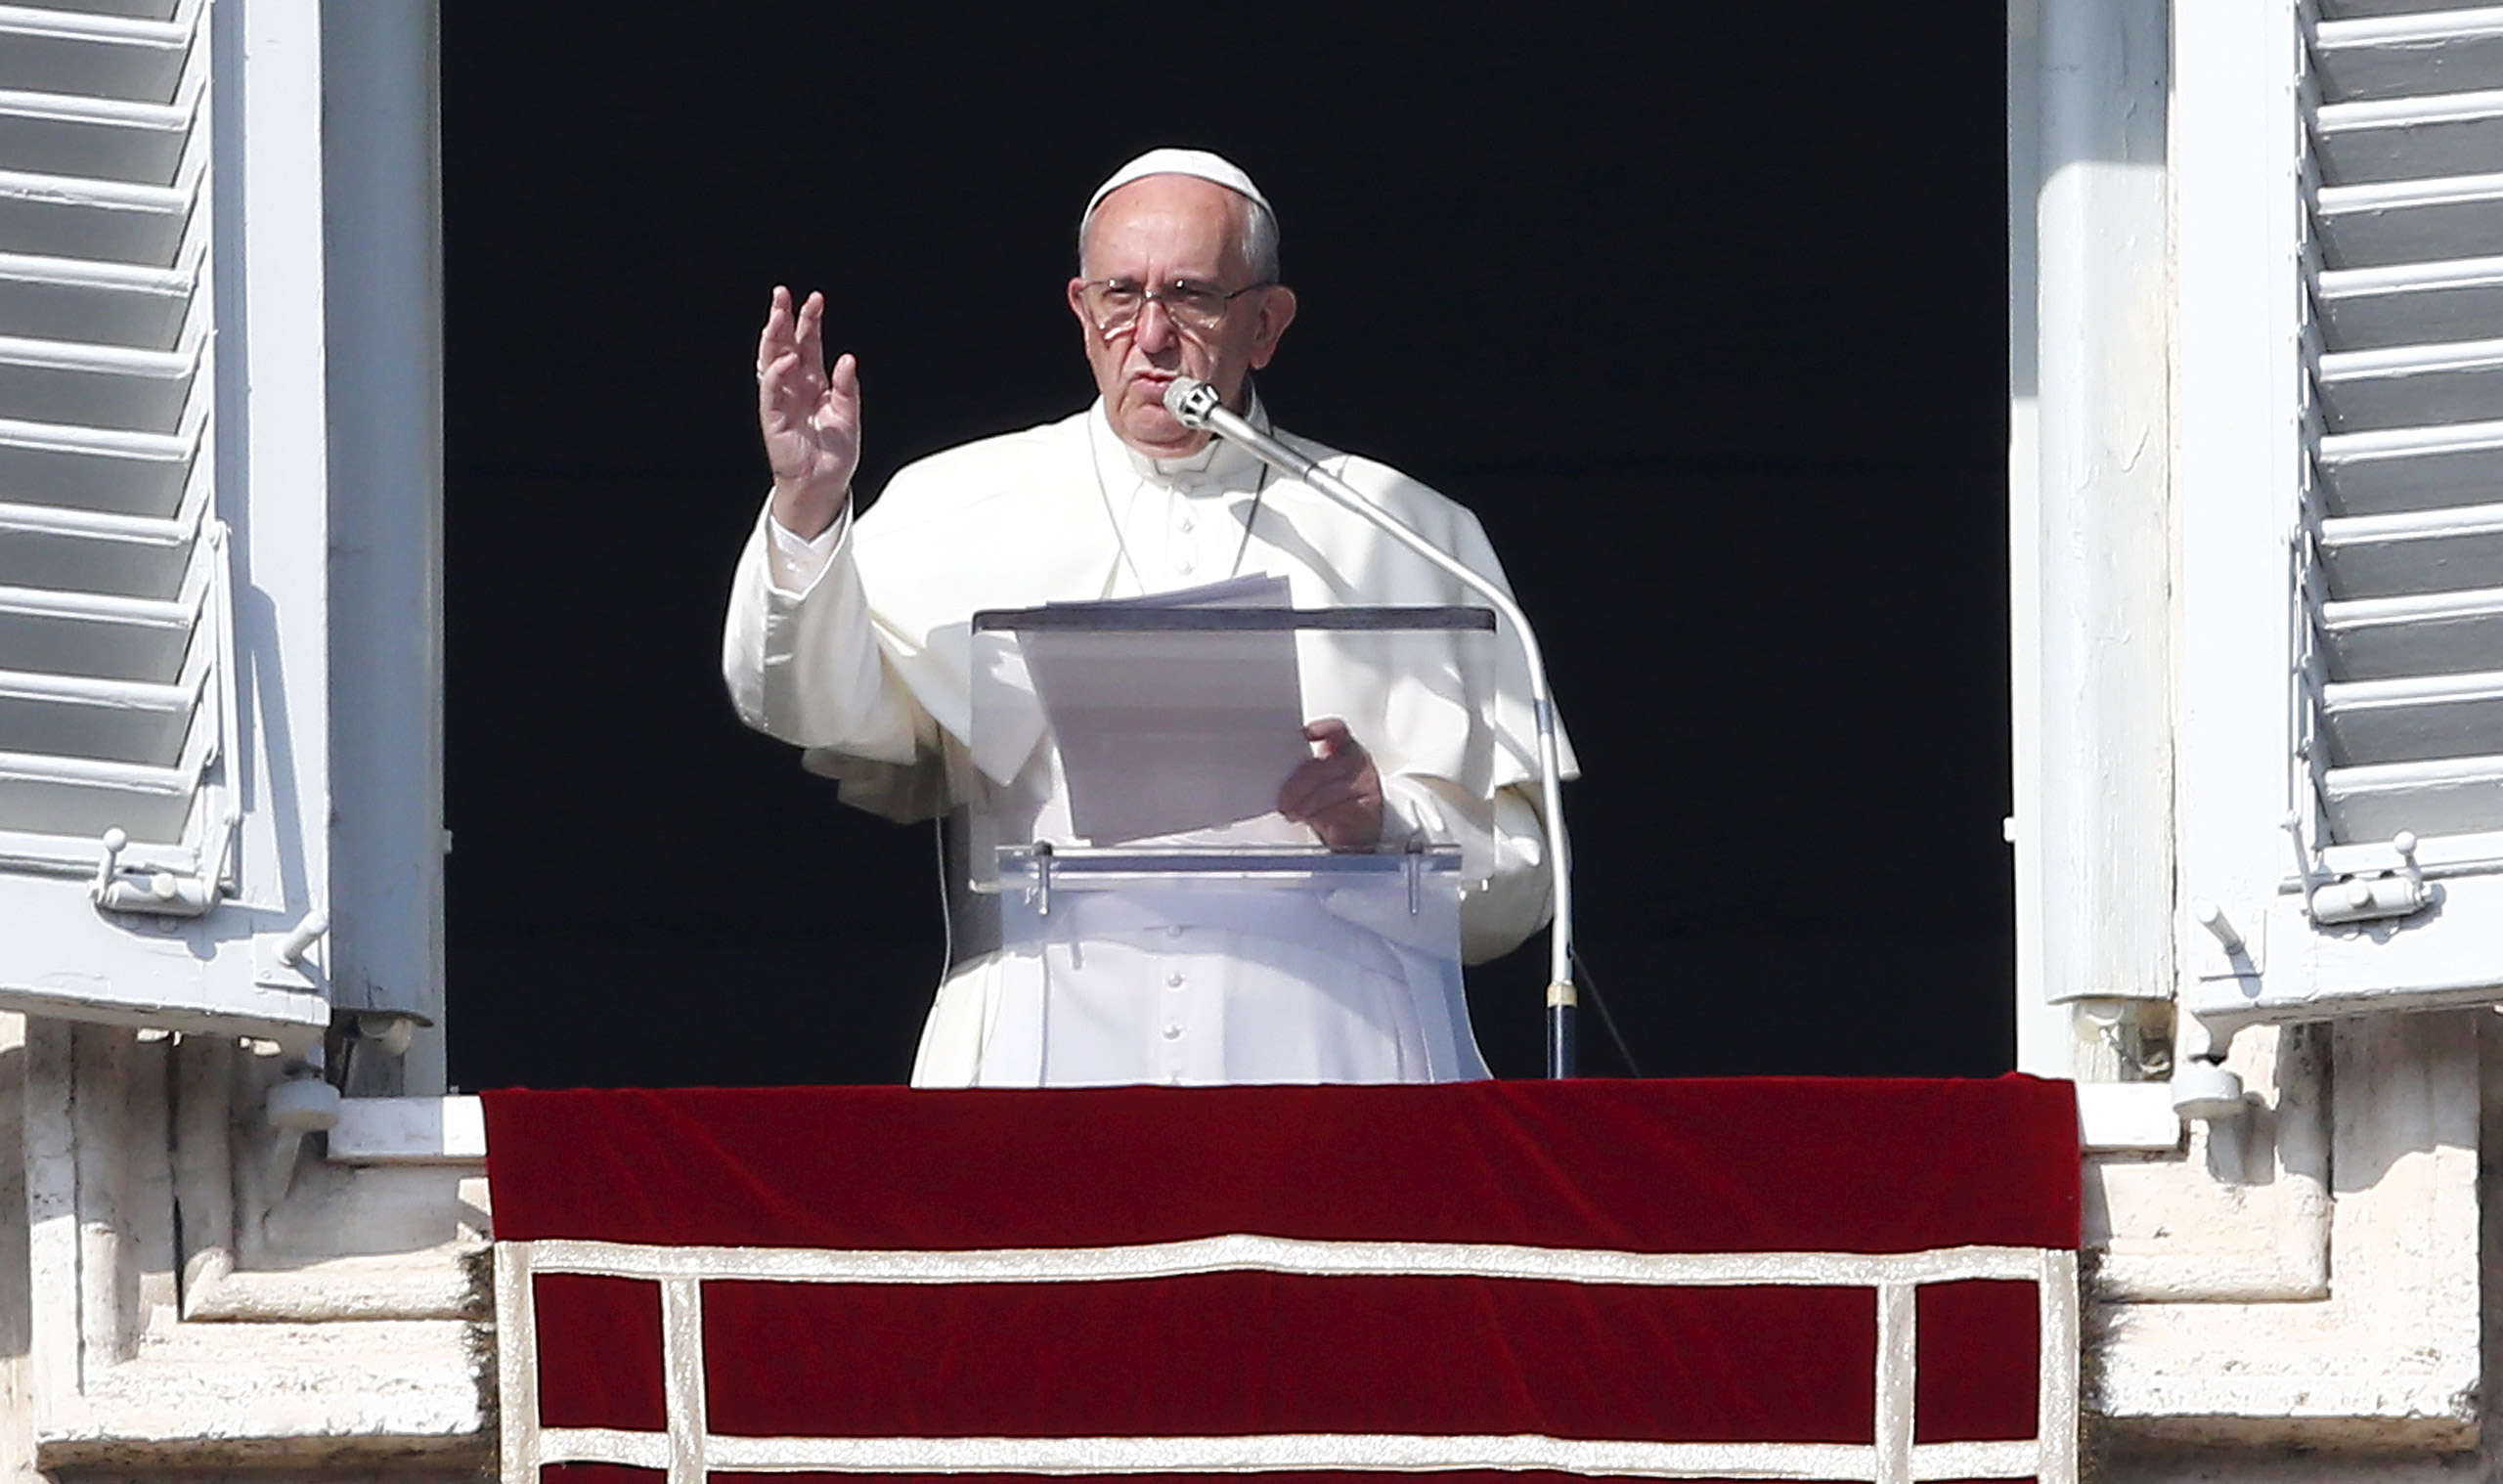 Pope Francis gestures during his Sunday Angelus prayer in Saint Peter's square at the Vatican, on Nov. 15, 2015.